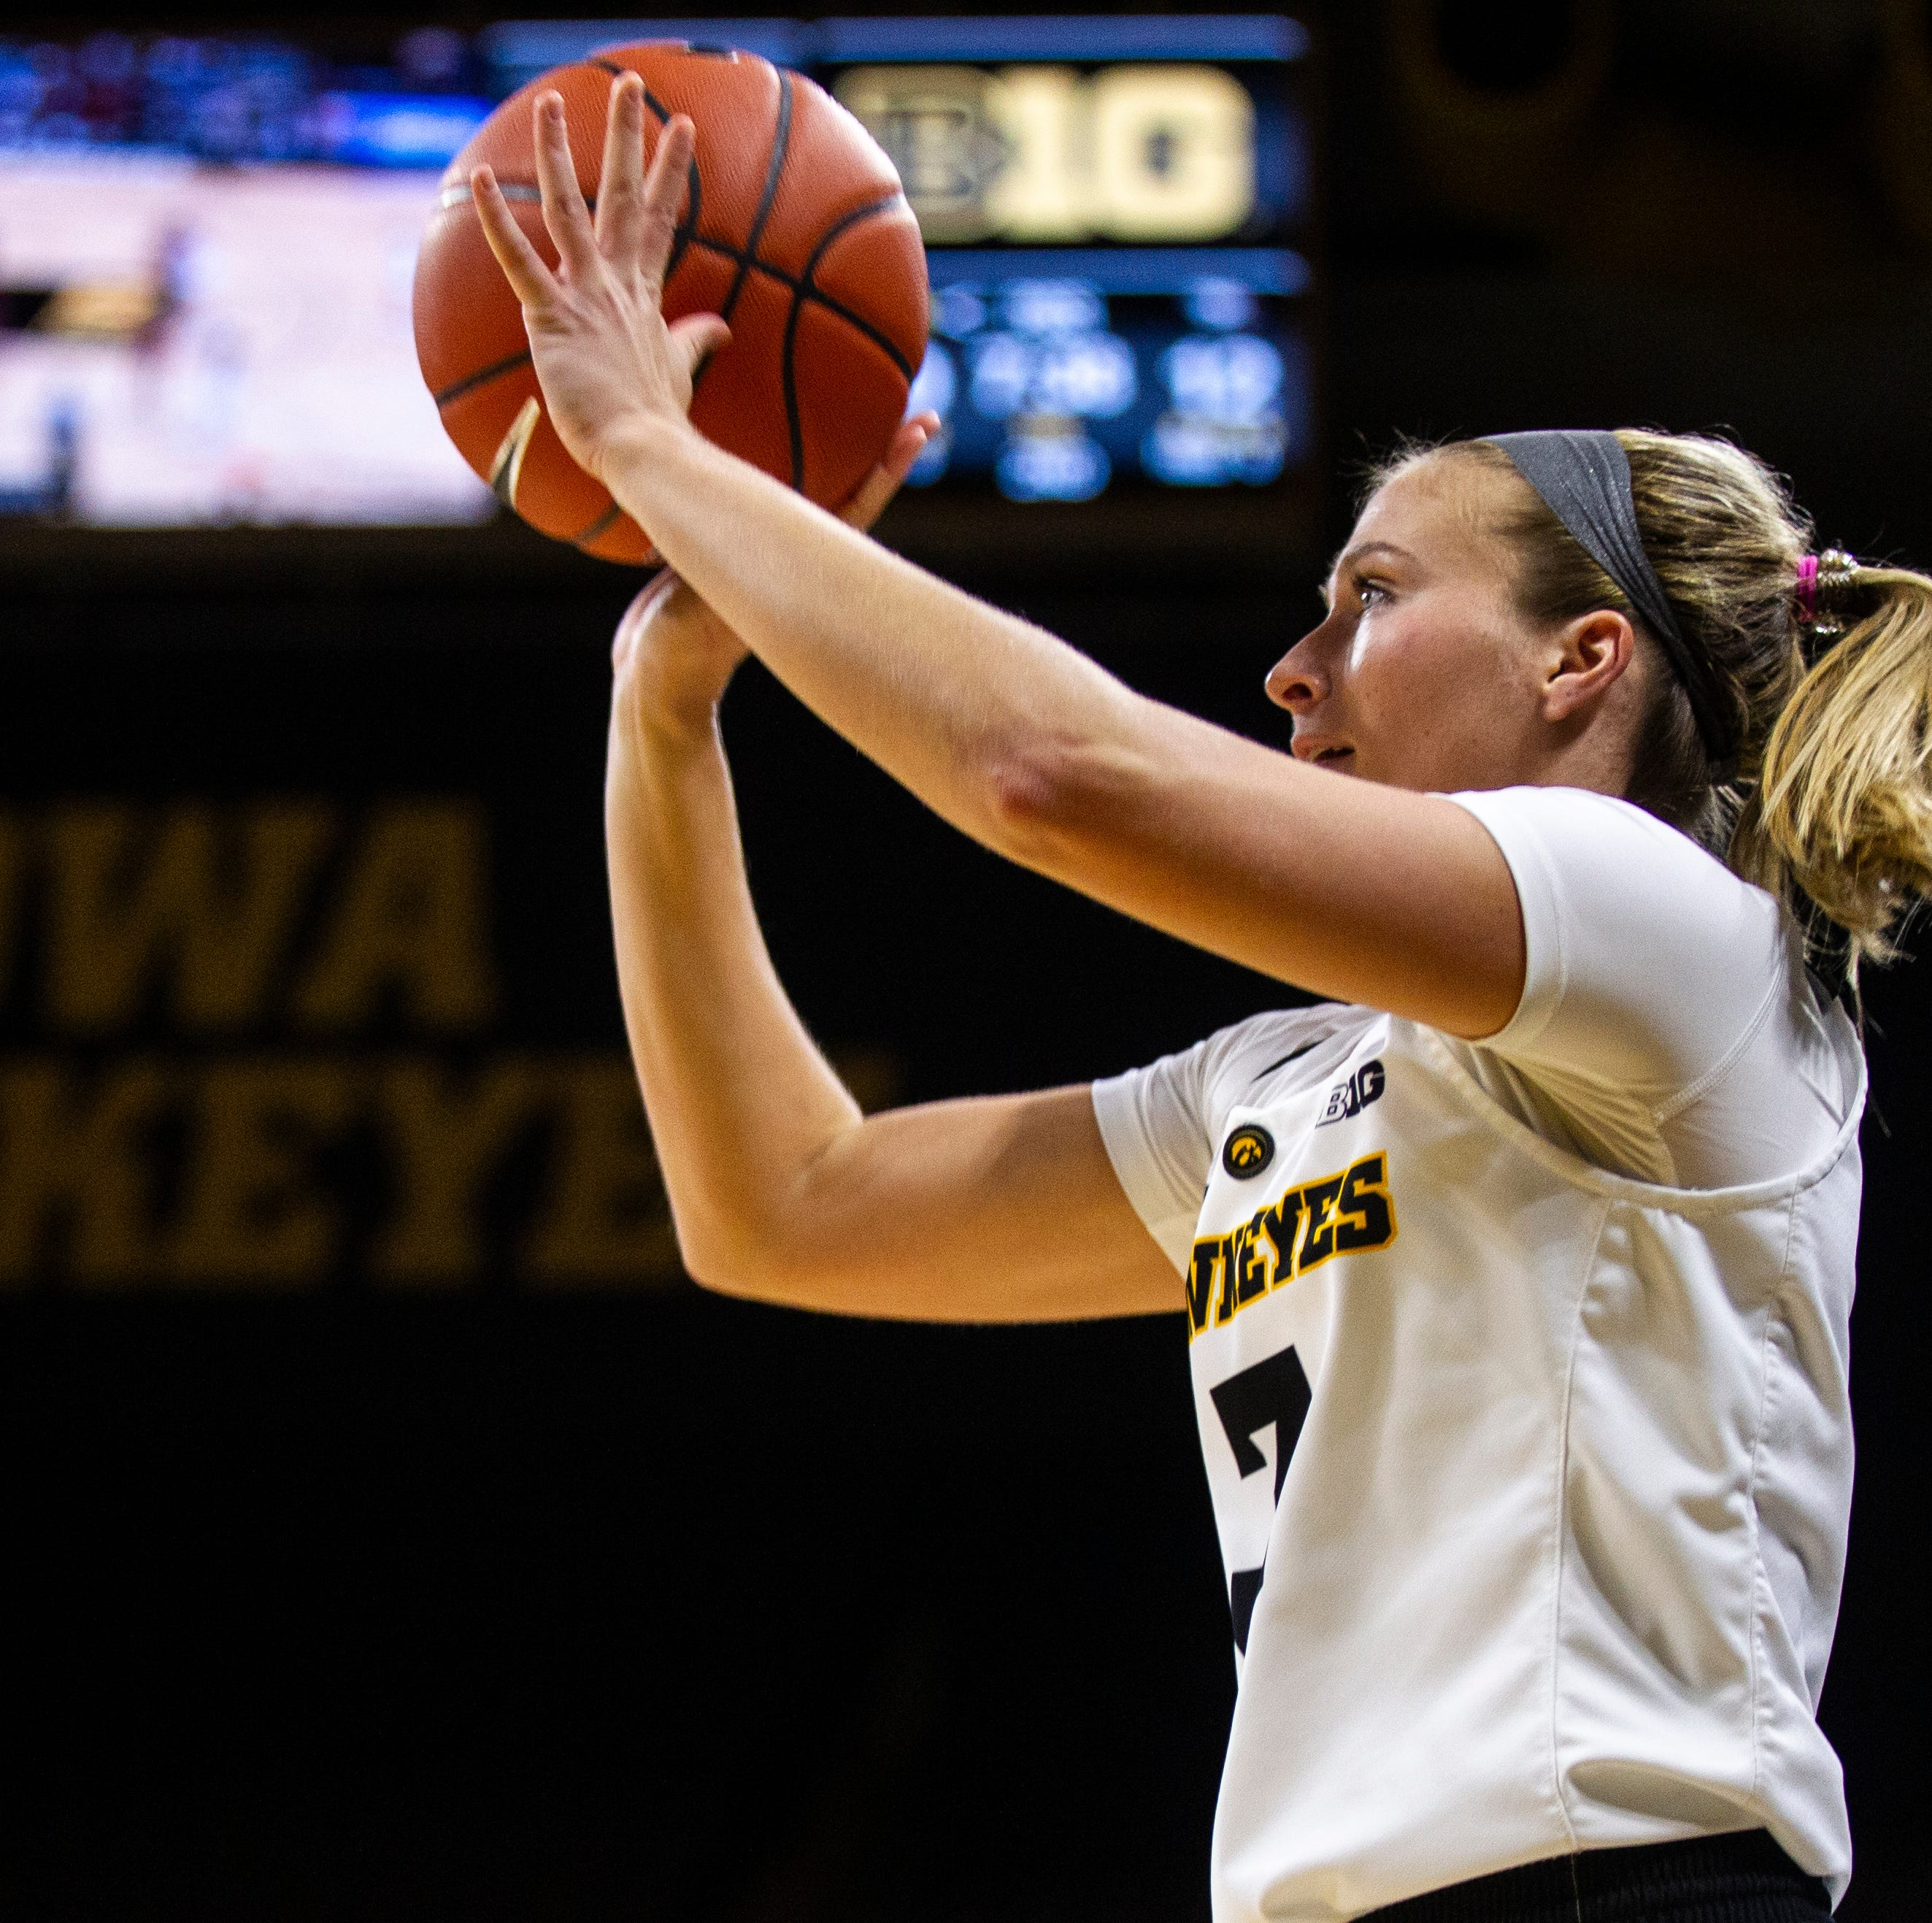 Iowa women's basketball: What we learned from the No. 17 Hawkeyes' win over N.C. Central